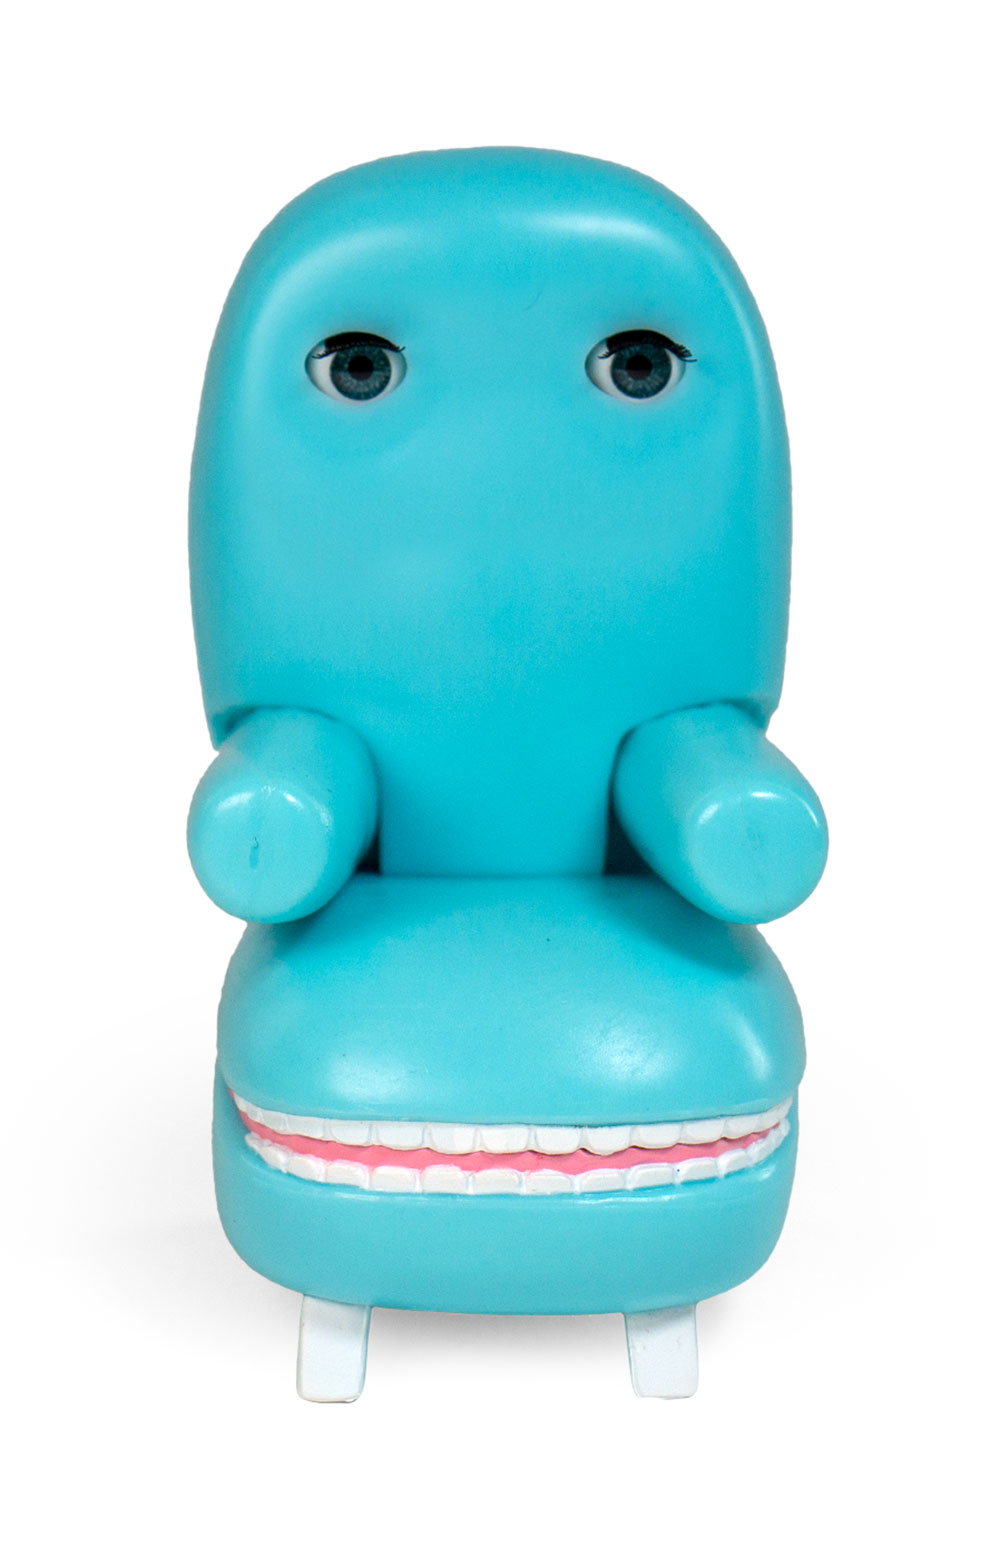 Pee-wee's Playhouse ReAction Figure - Chairry